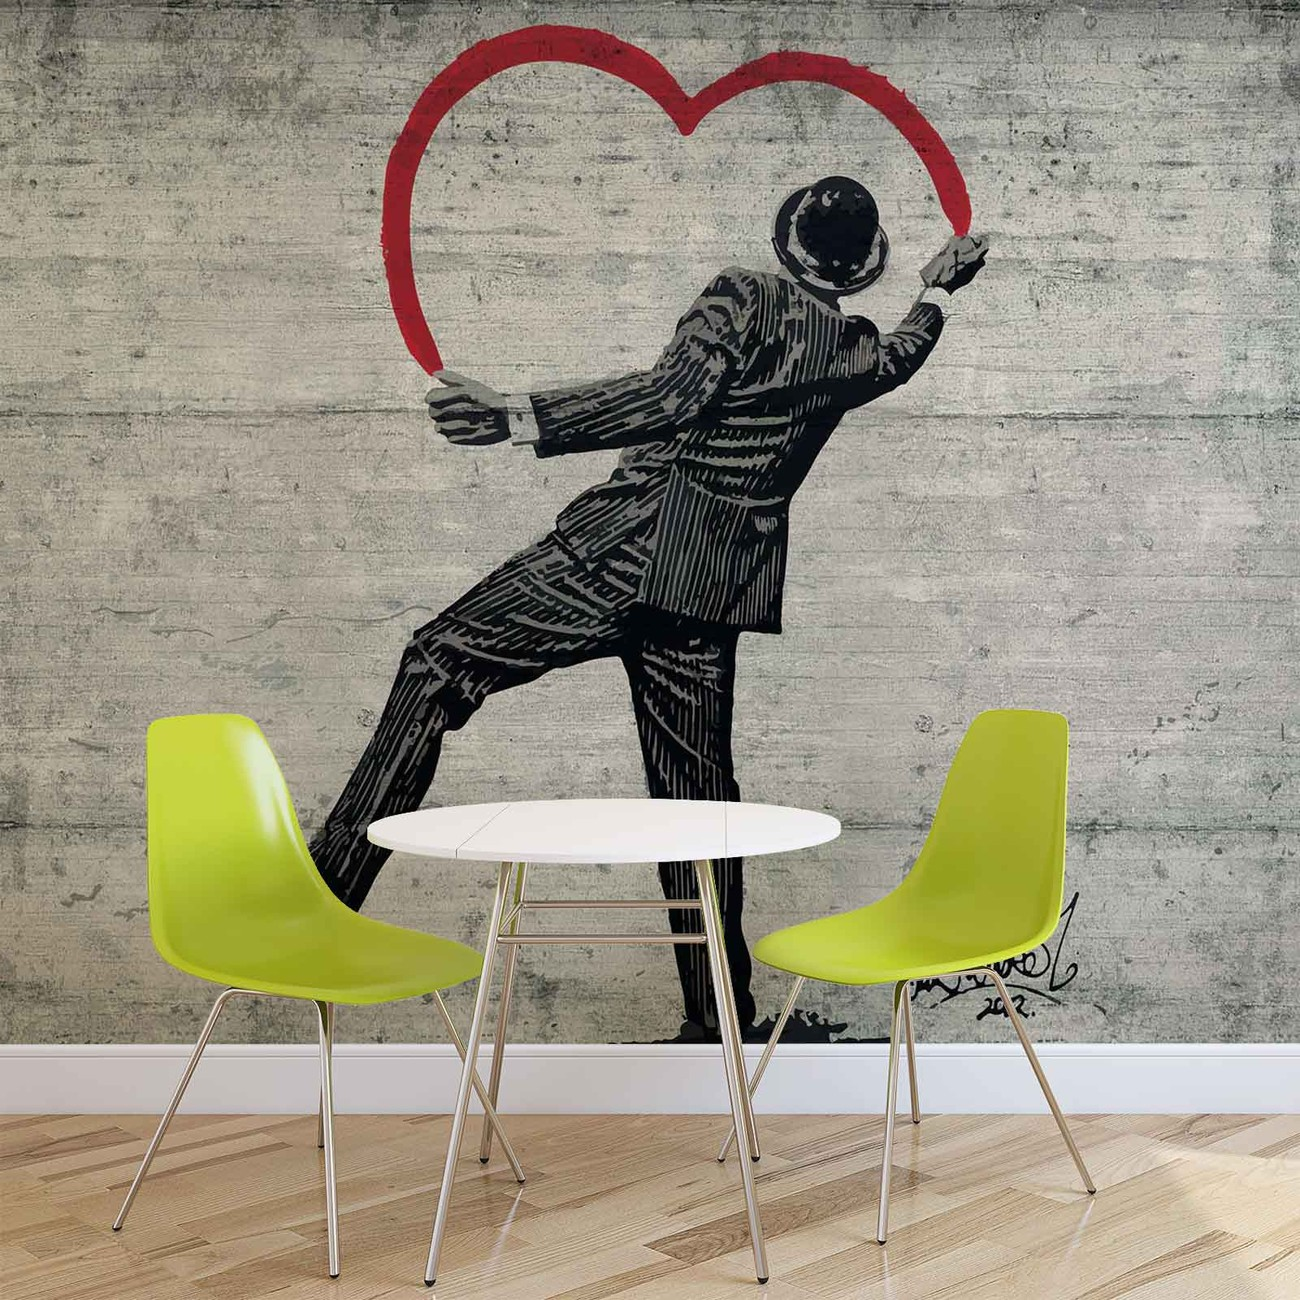 people wallpaper murals buy online at europosters banksy graffiti concrete wall